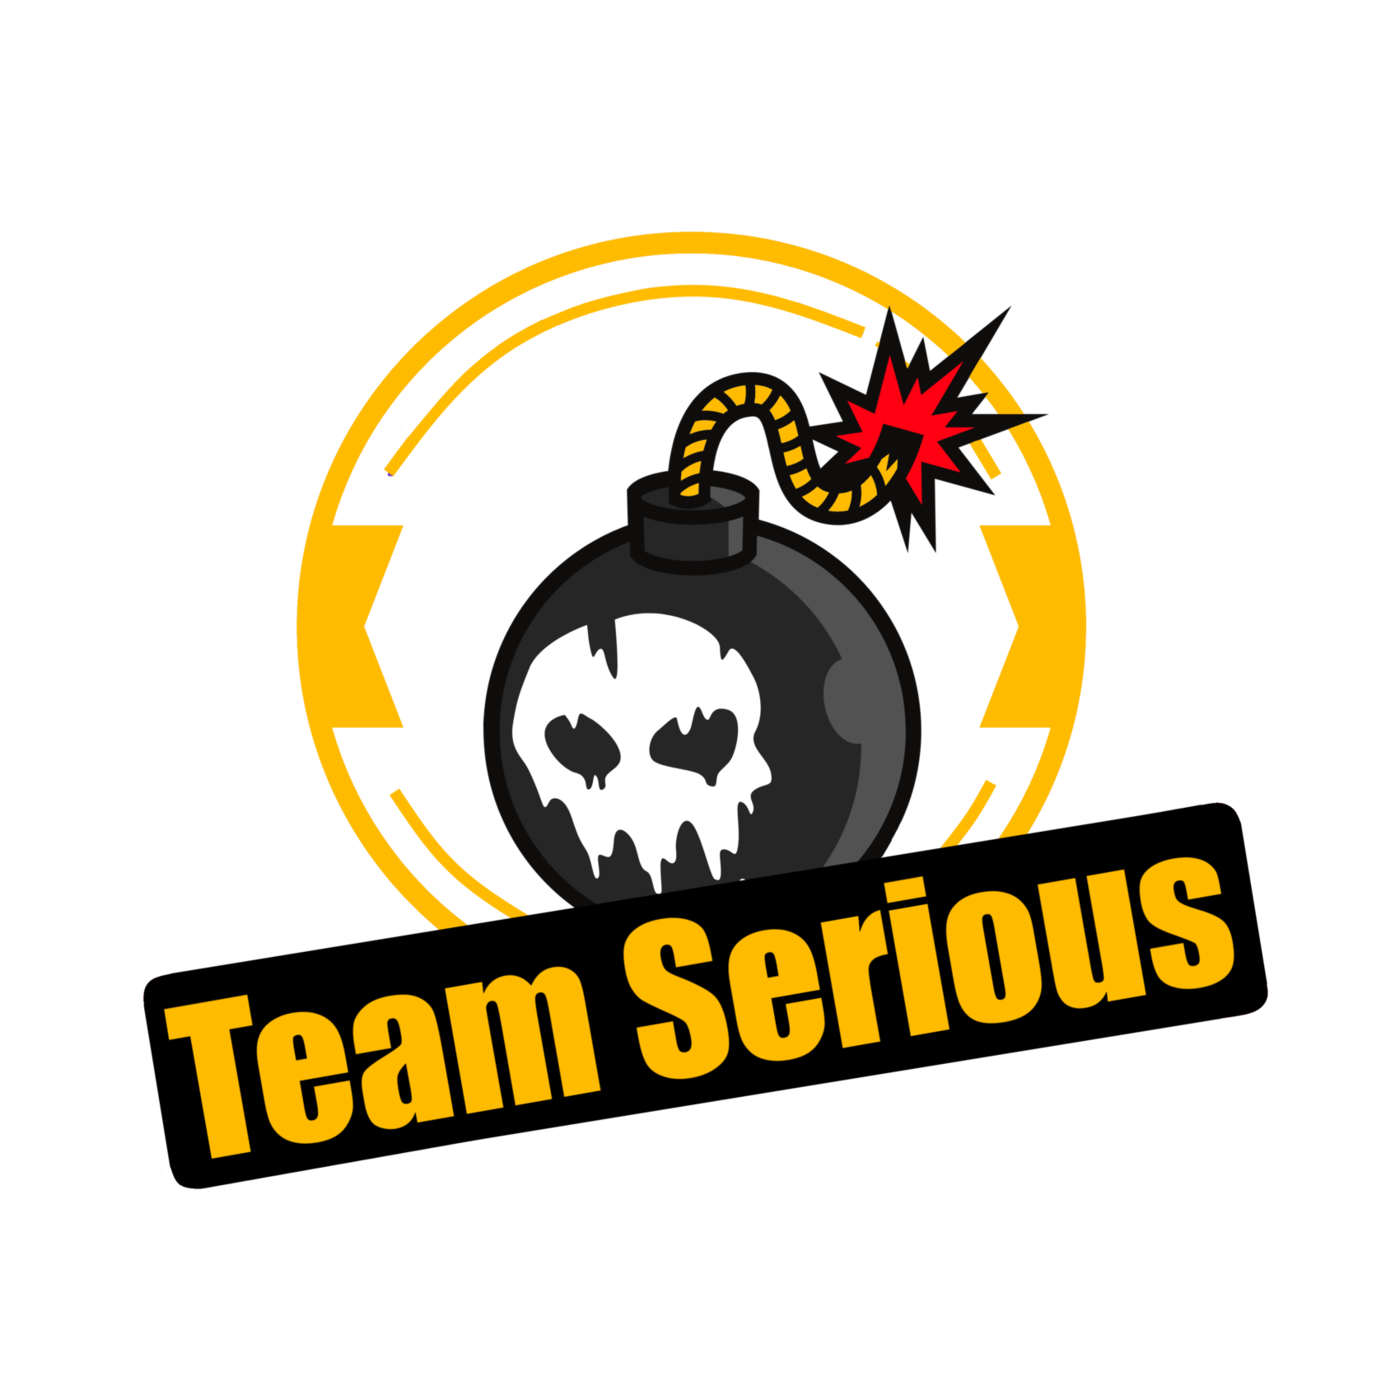 Team Serious DFW Talks - SageRage (Serious Ladies)